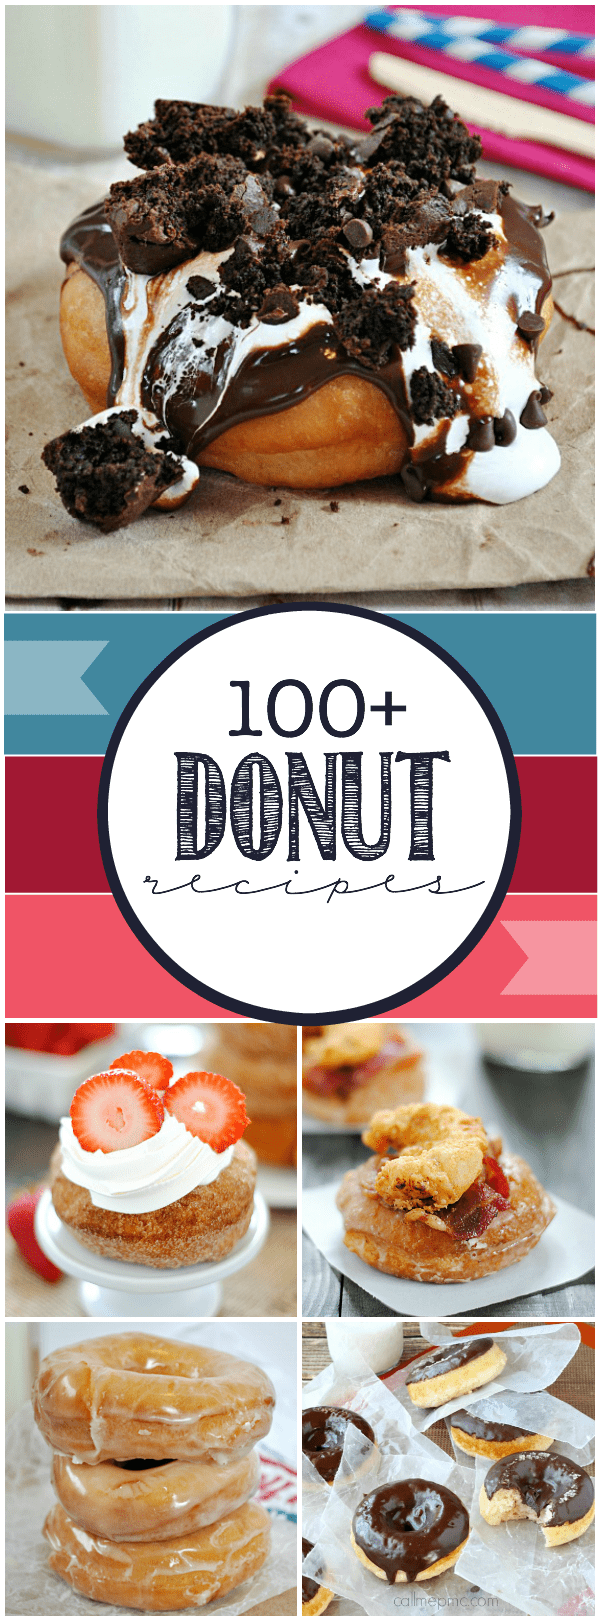 100+ Homemade Donuts